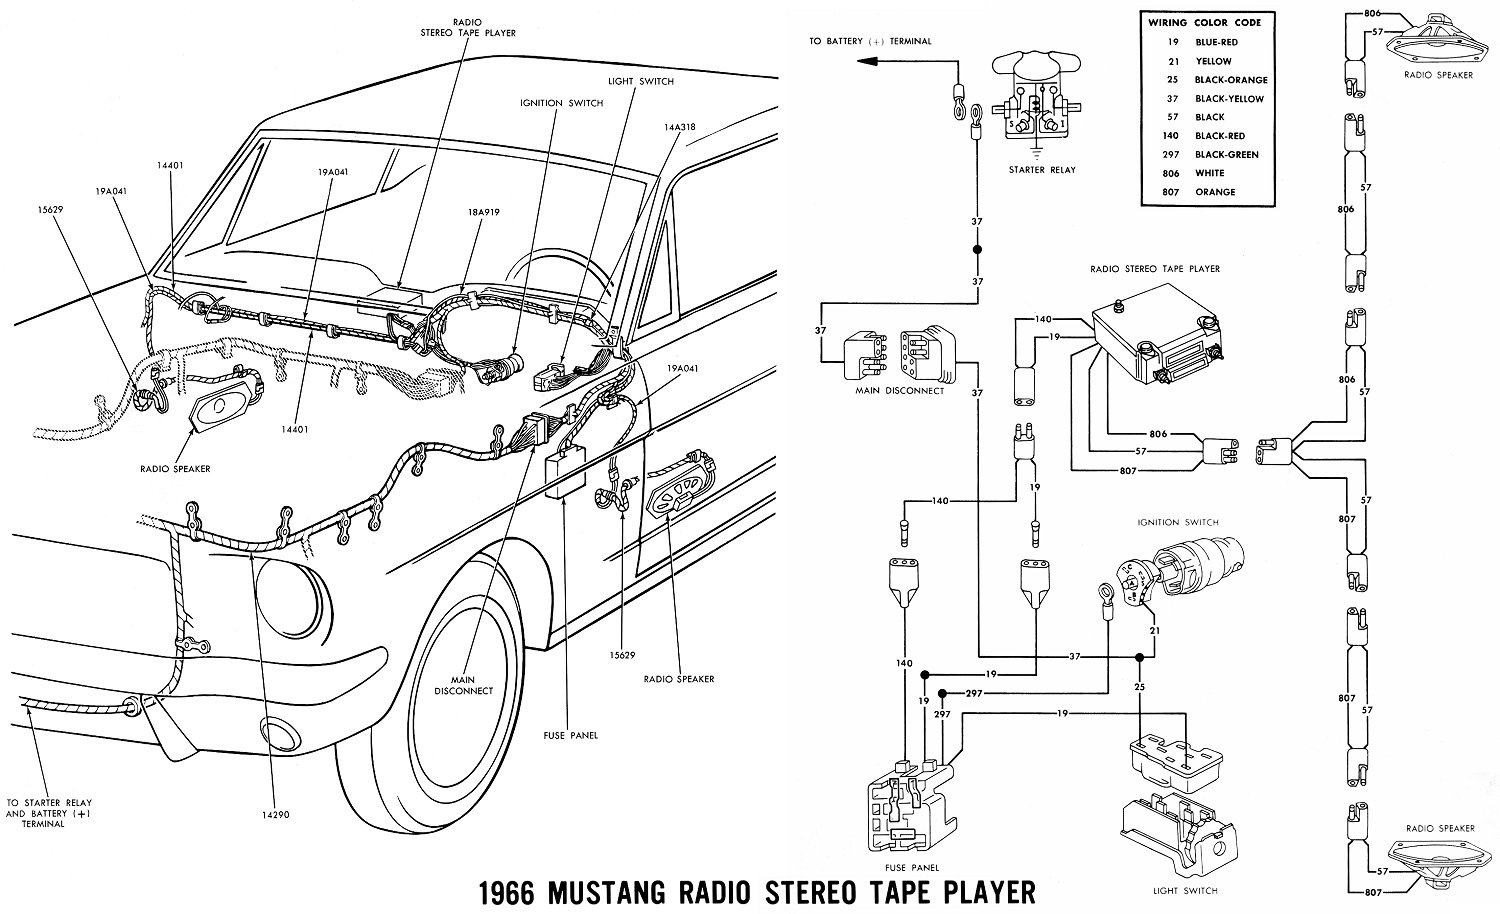 Old School Car Audio Wiring Diagrams Diagram Will Be A Thing Realistic Radio Vintage Mustang Rh Midlife66 Com Sony Stereo Kenwood